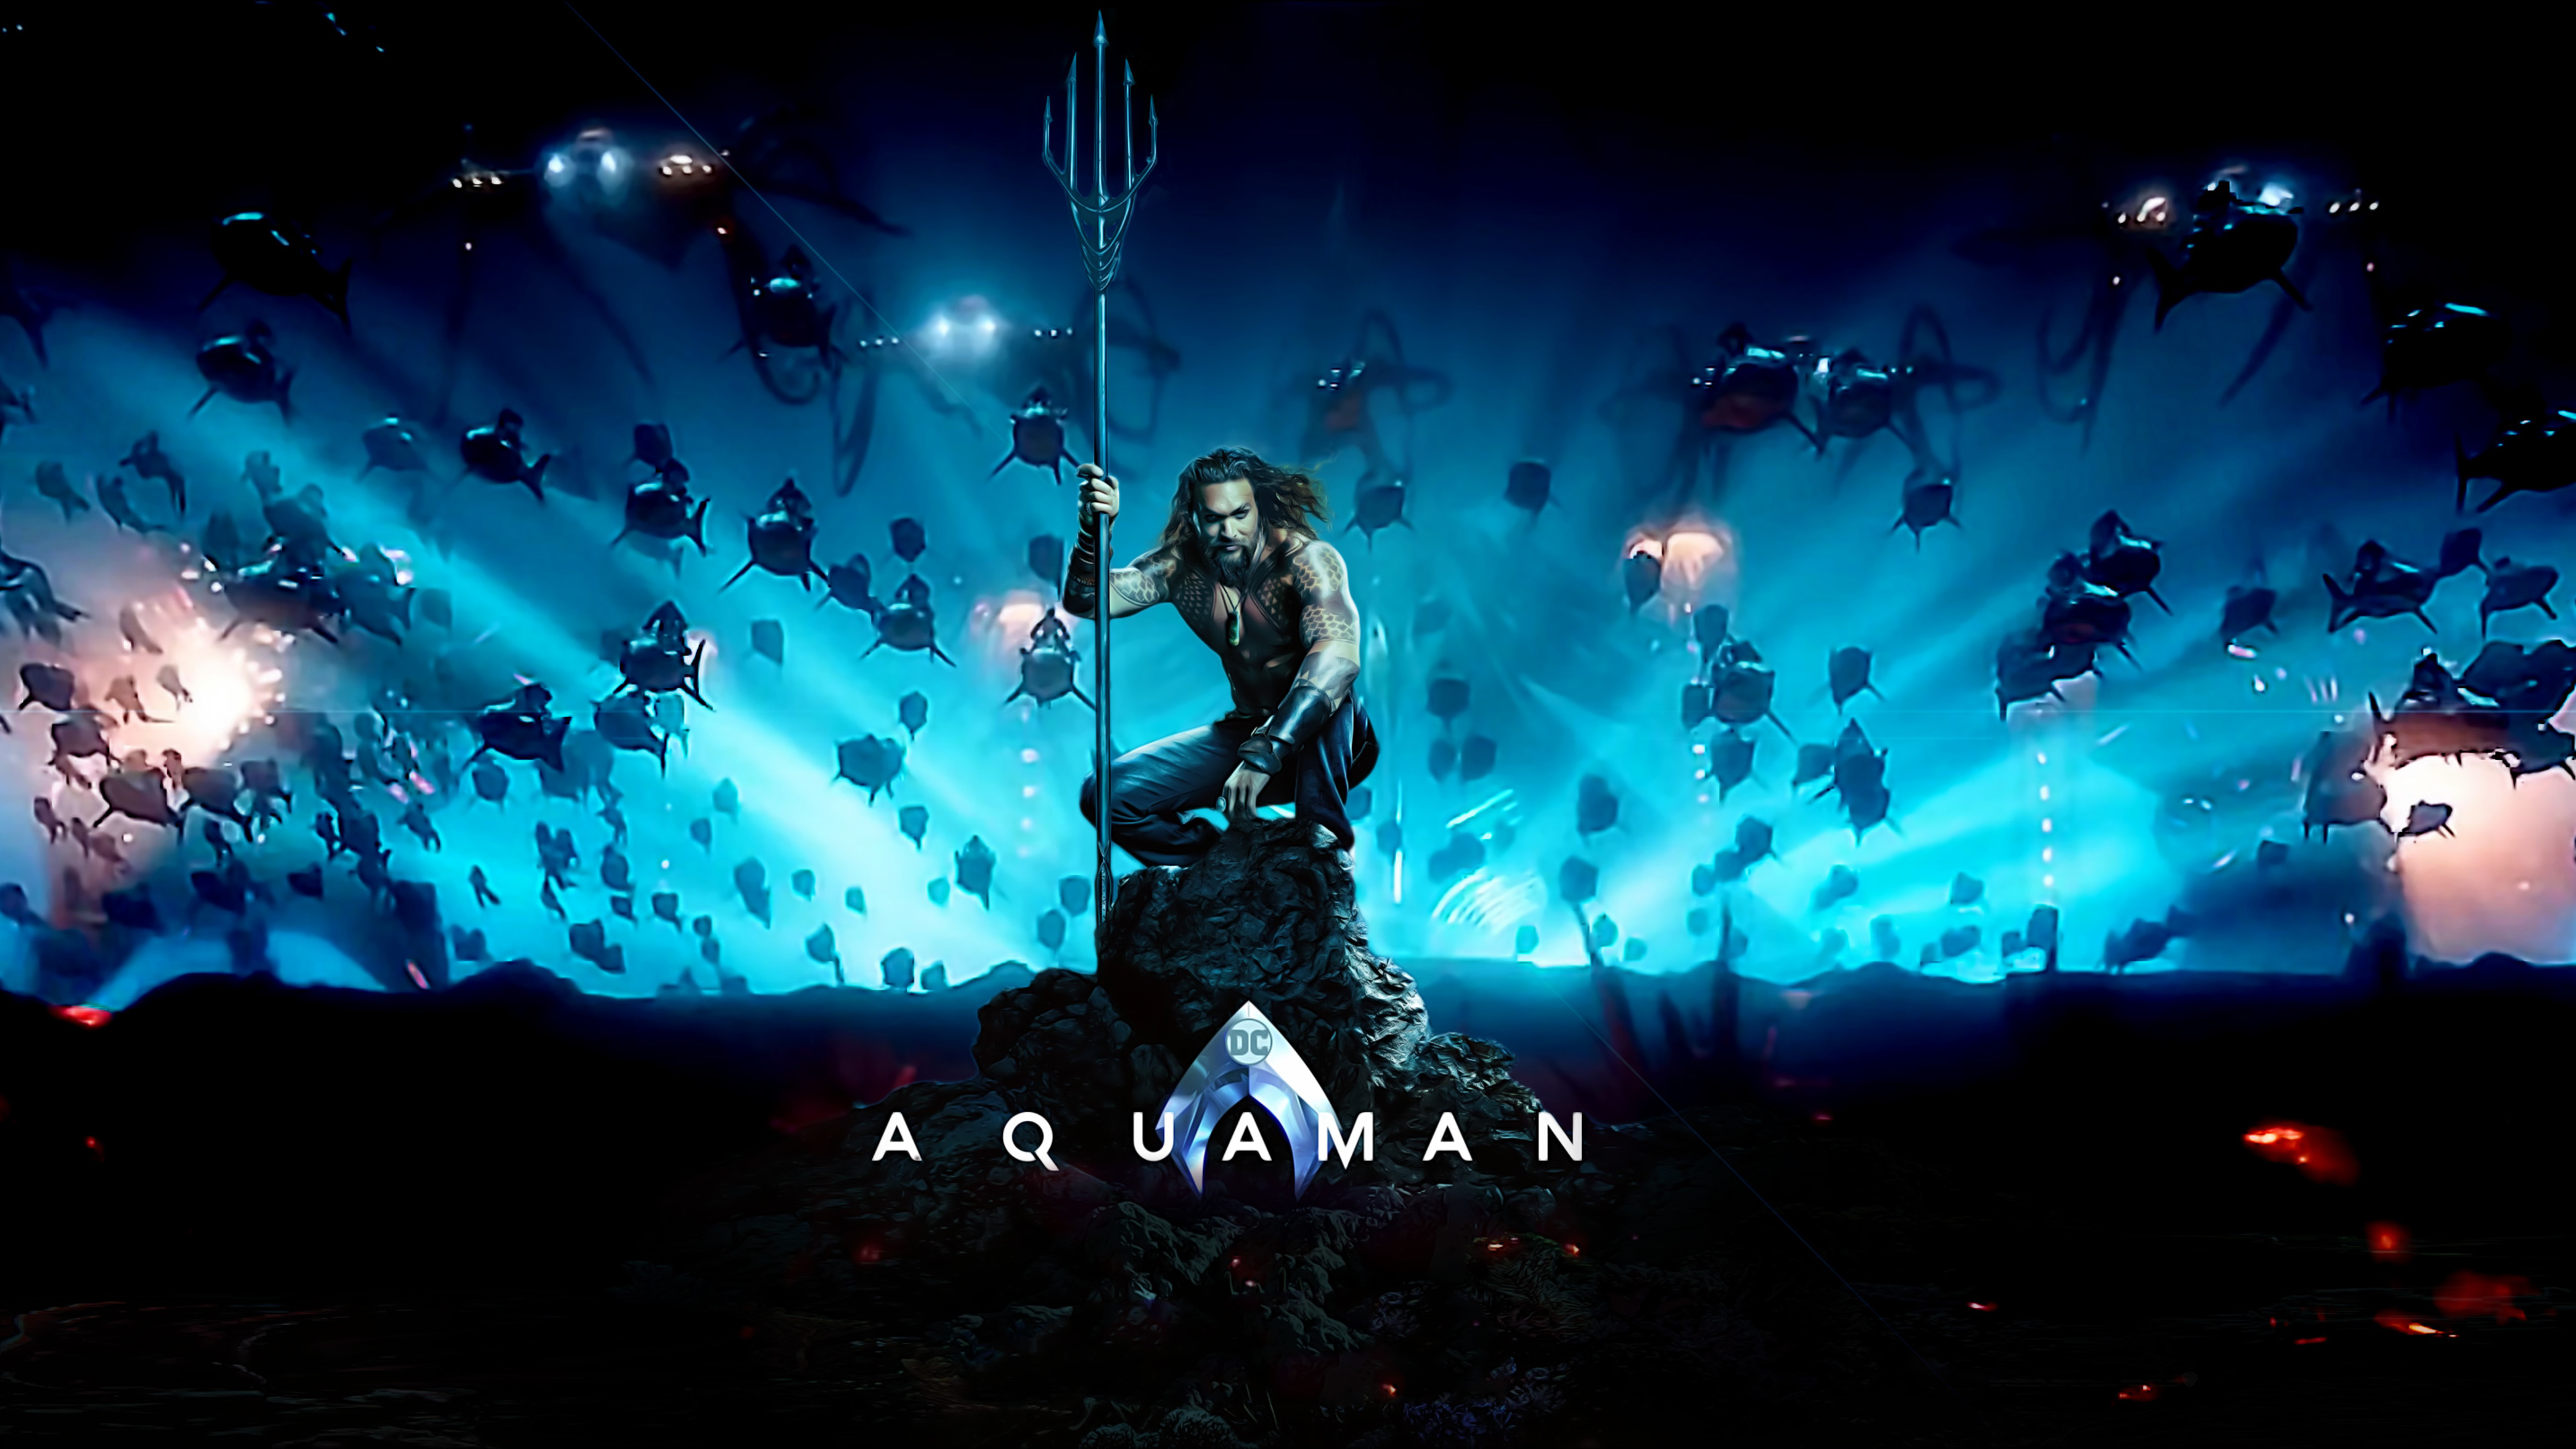 2048x2048 Mera Aquaman Movie Poster Ipad Air Hd 4k: Aquaman Movie Poster Movies Wallpapers, Jason Momoa